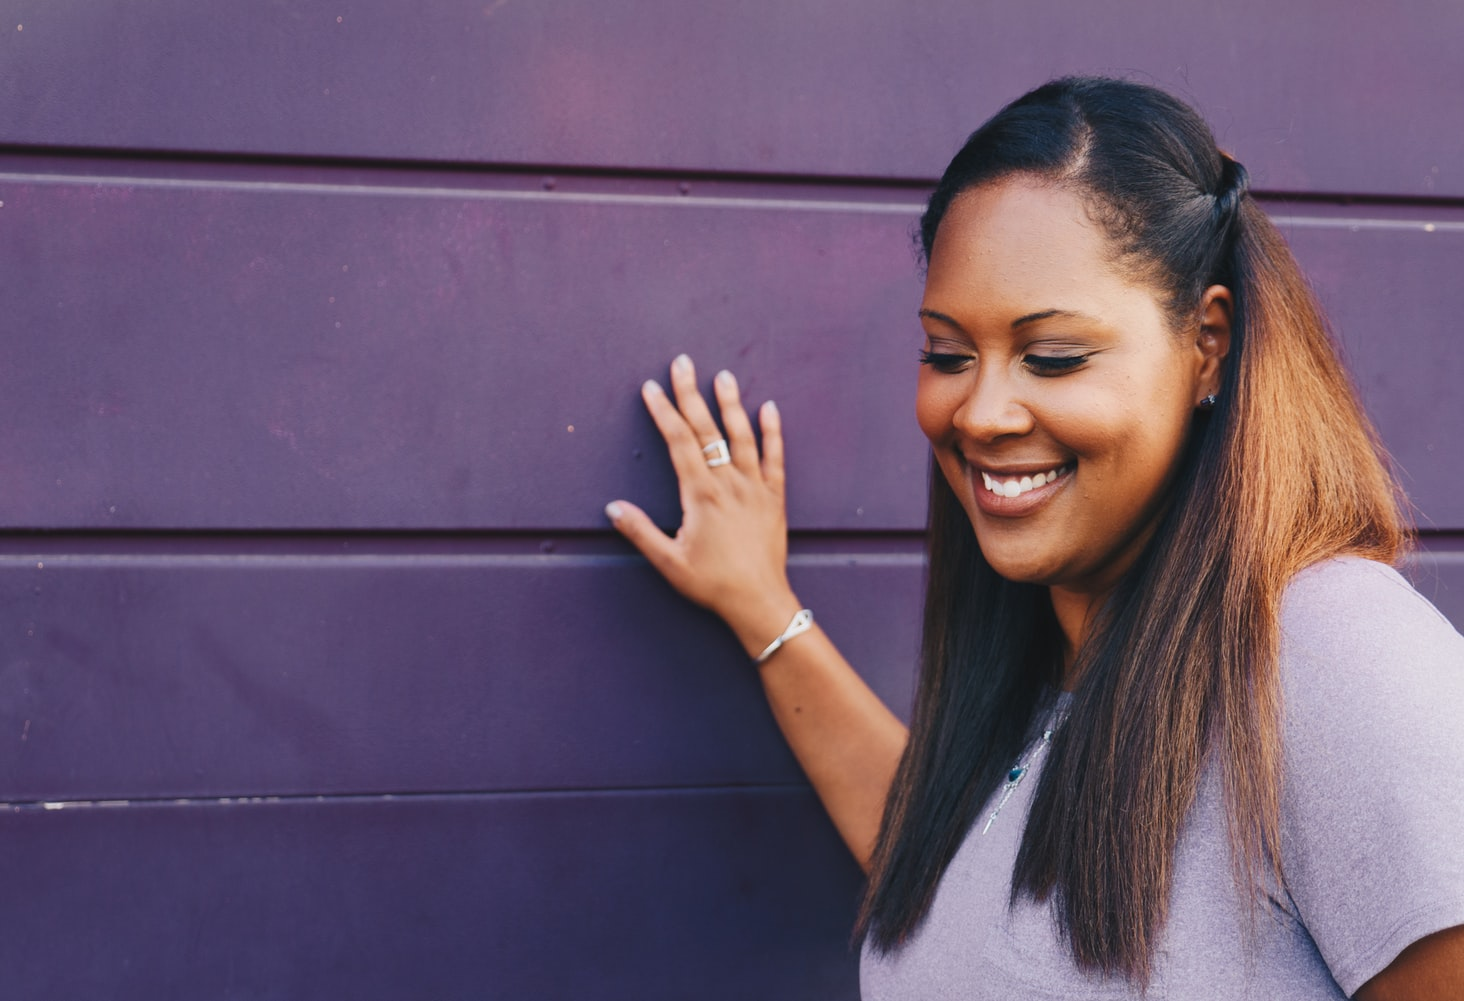 Claudia smiling against a purple wall